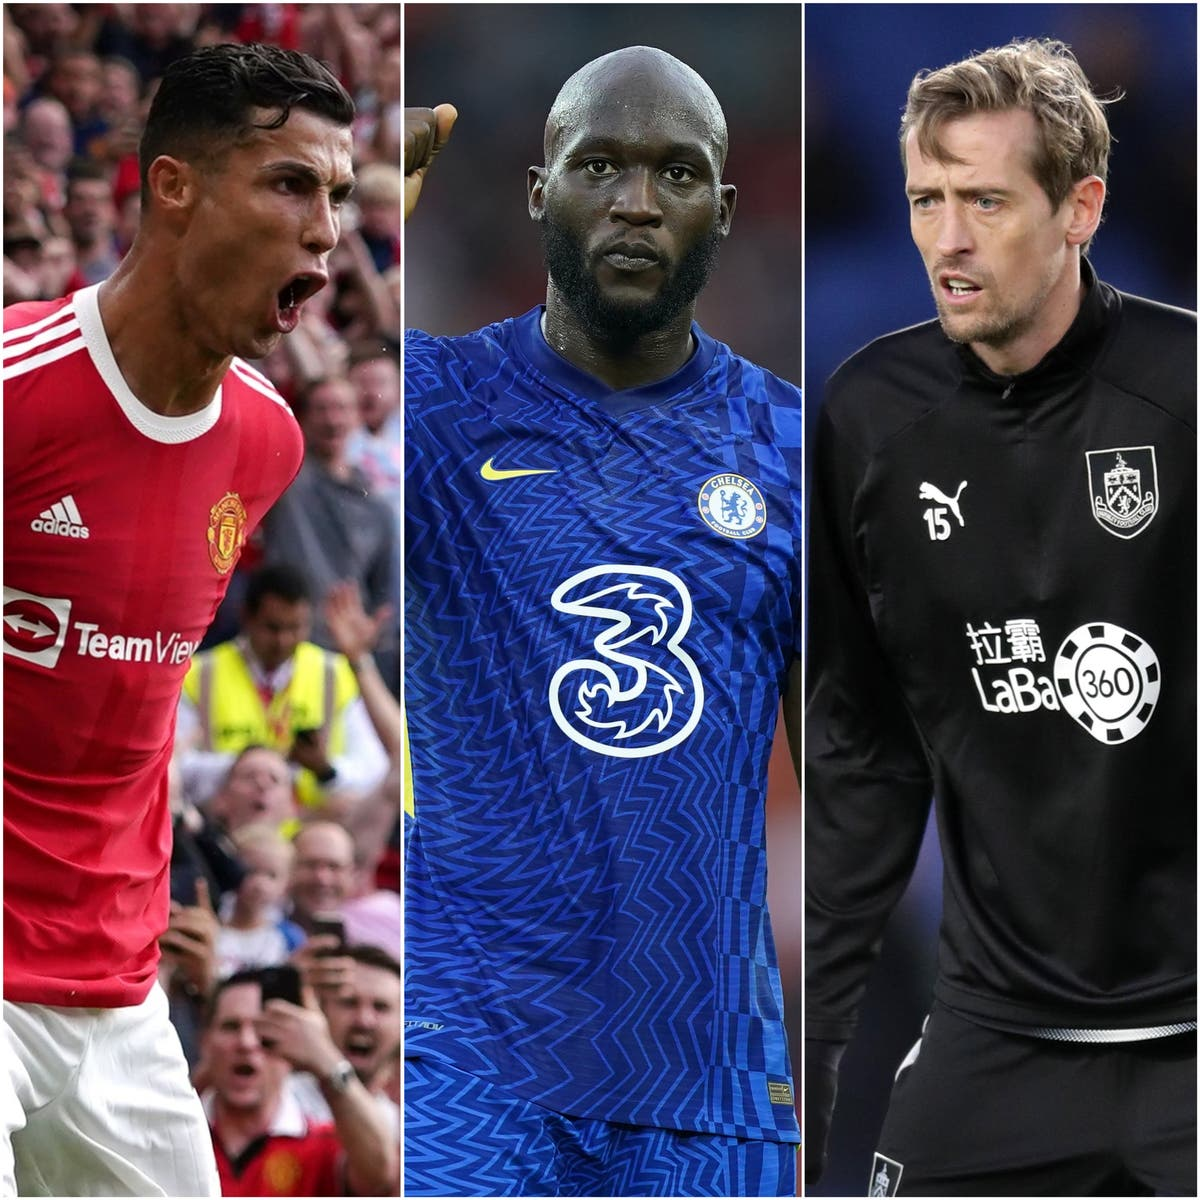 Ronaldo and Lukaku on target, Crouch has leg issues – Saturday's sporting social